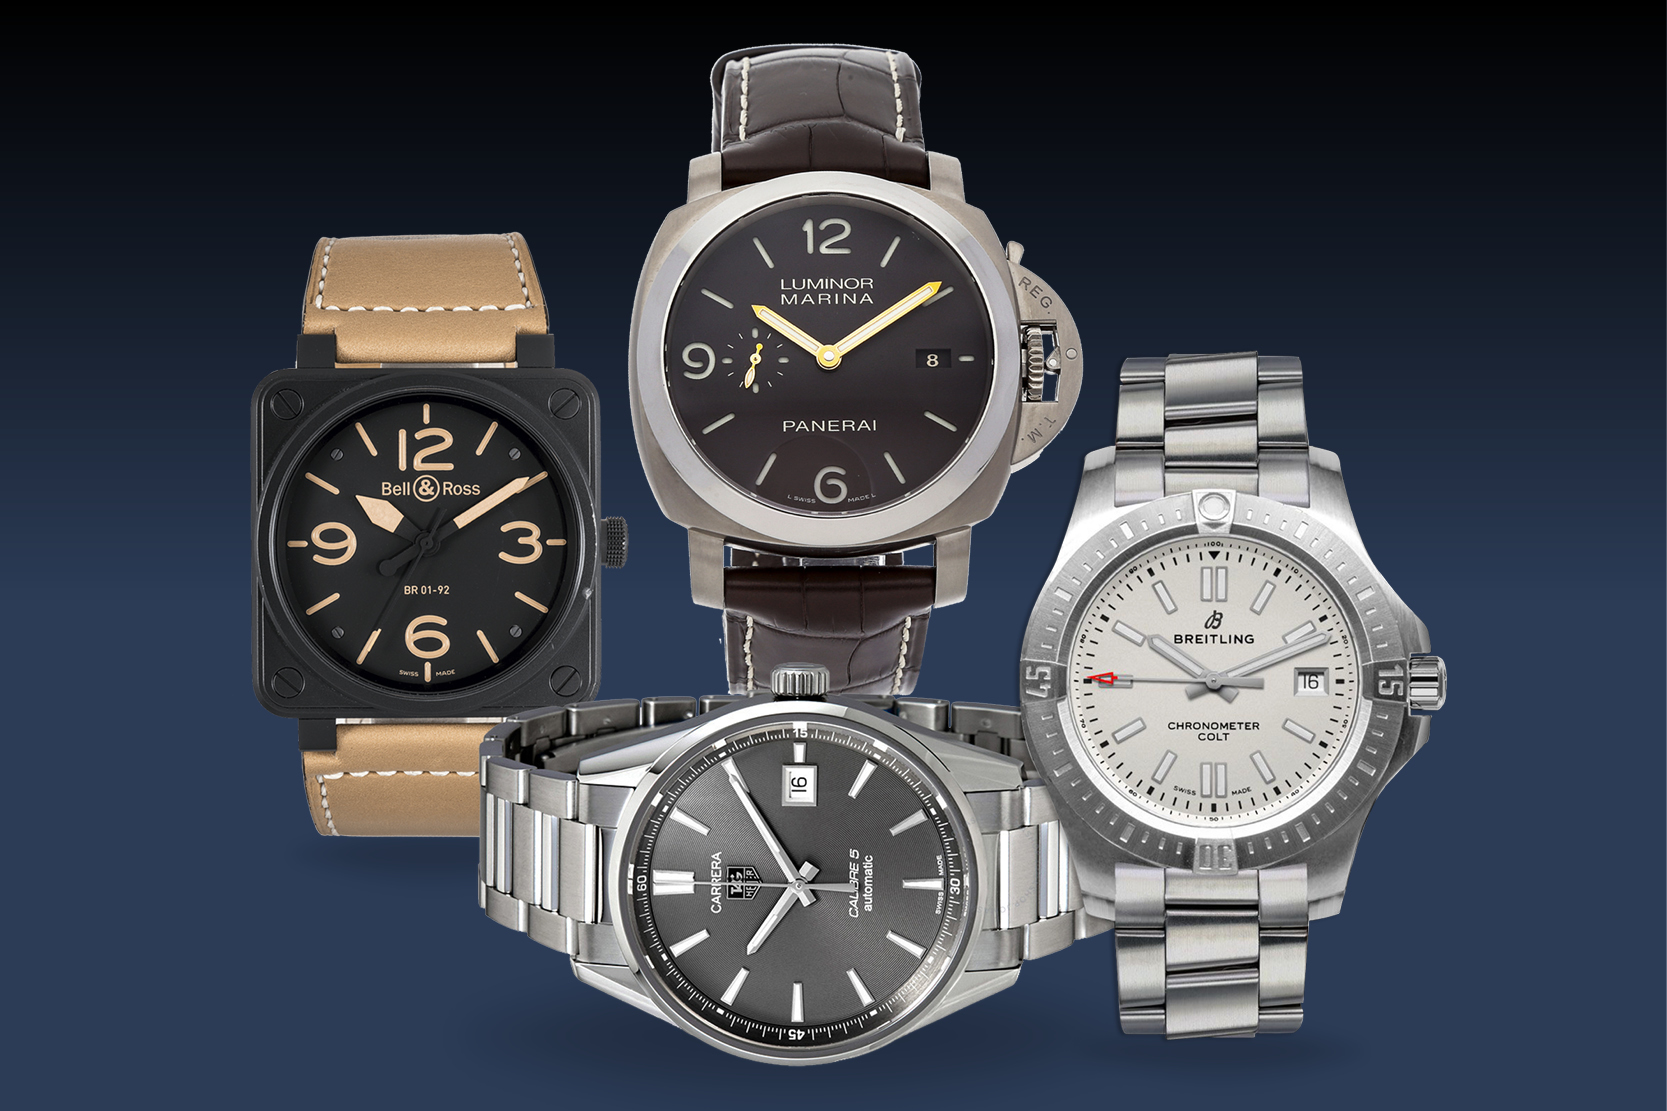 Pre-Owned Luxury Watch Event